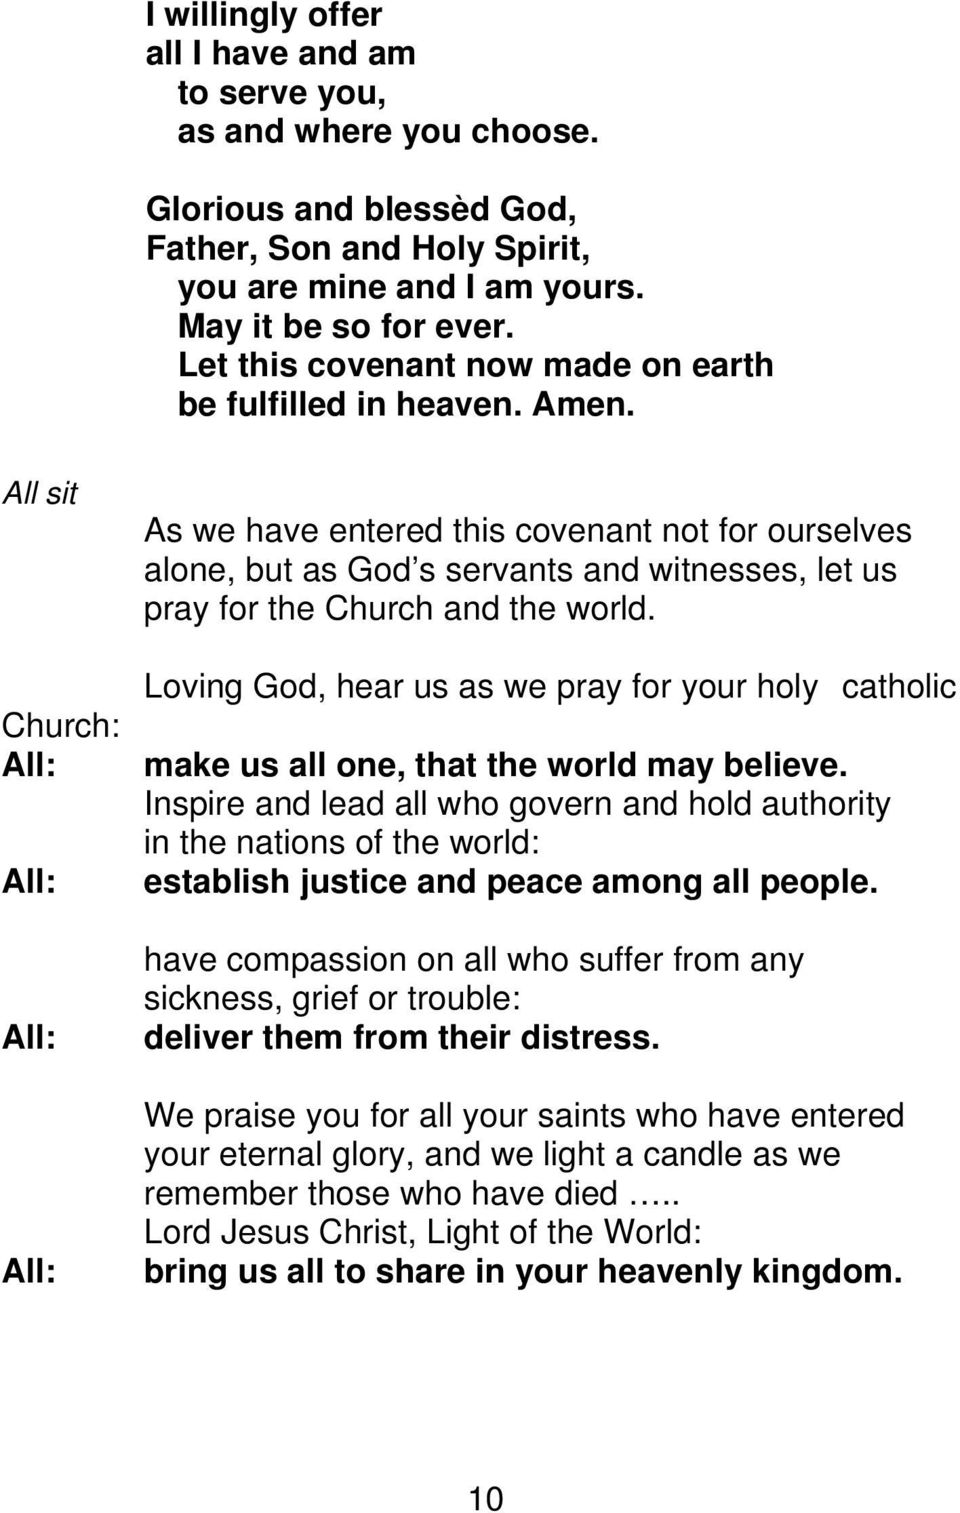 All sit Church: As we have entered this covenant not for ourselves alone, but as God s servants and witnesses, let us pray for the Church and the world.